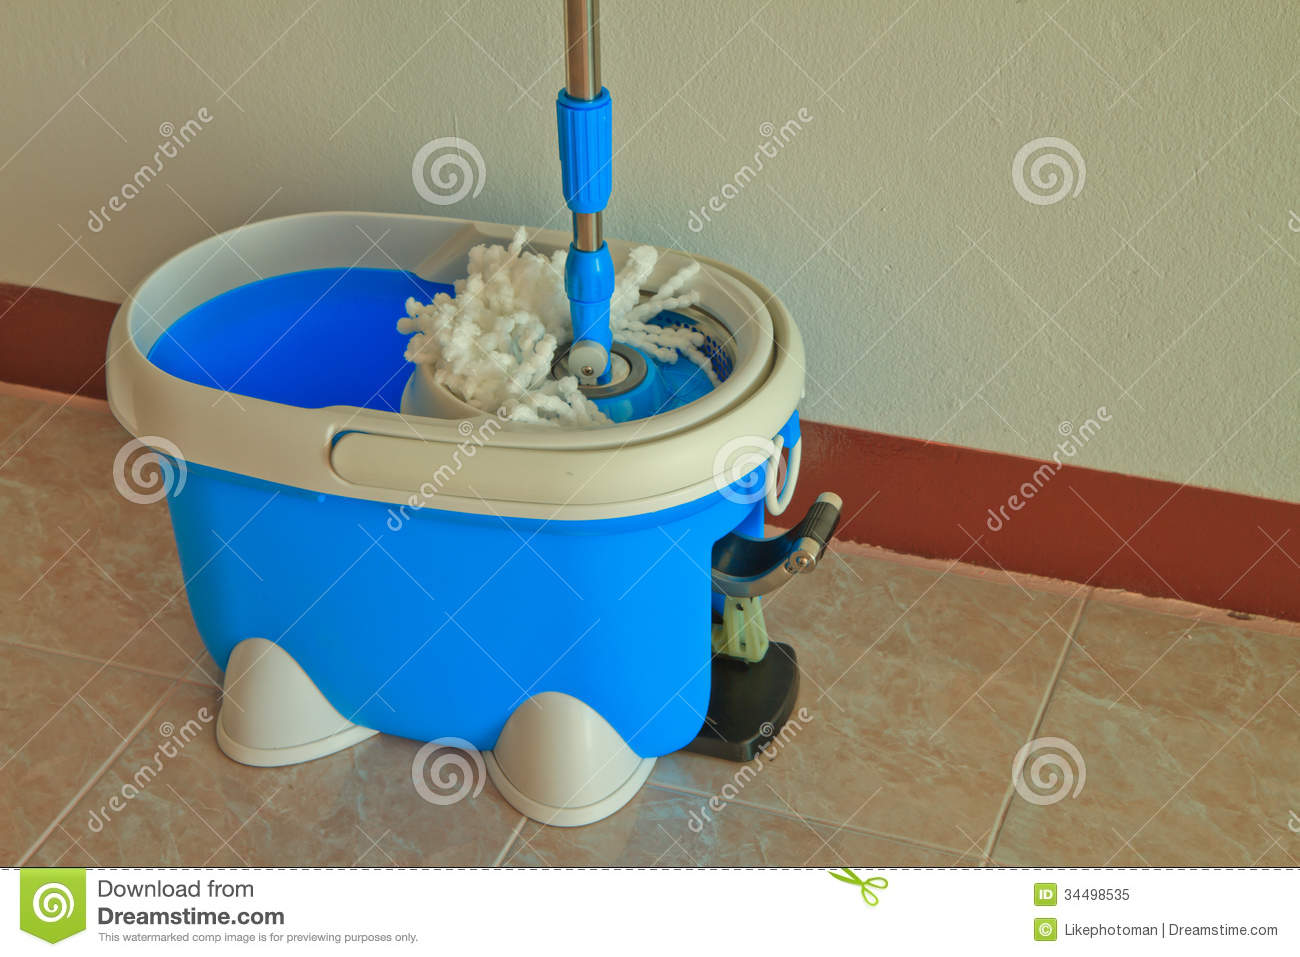 how to fix the spring on a mop bucket